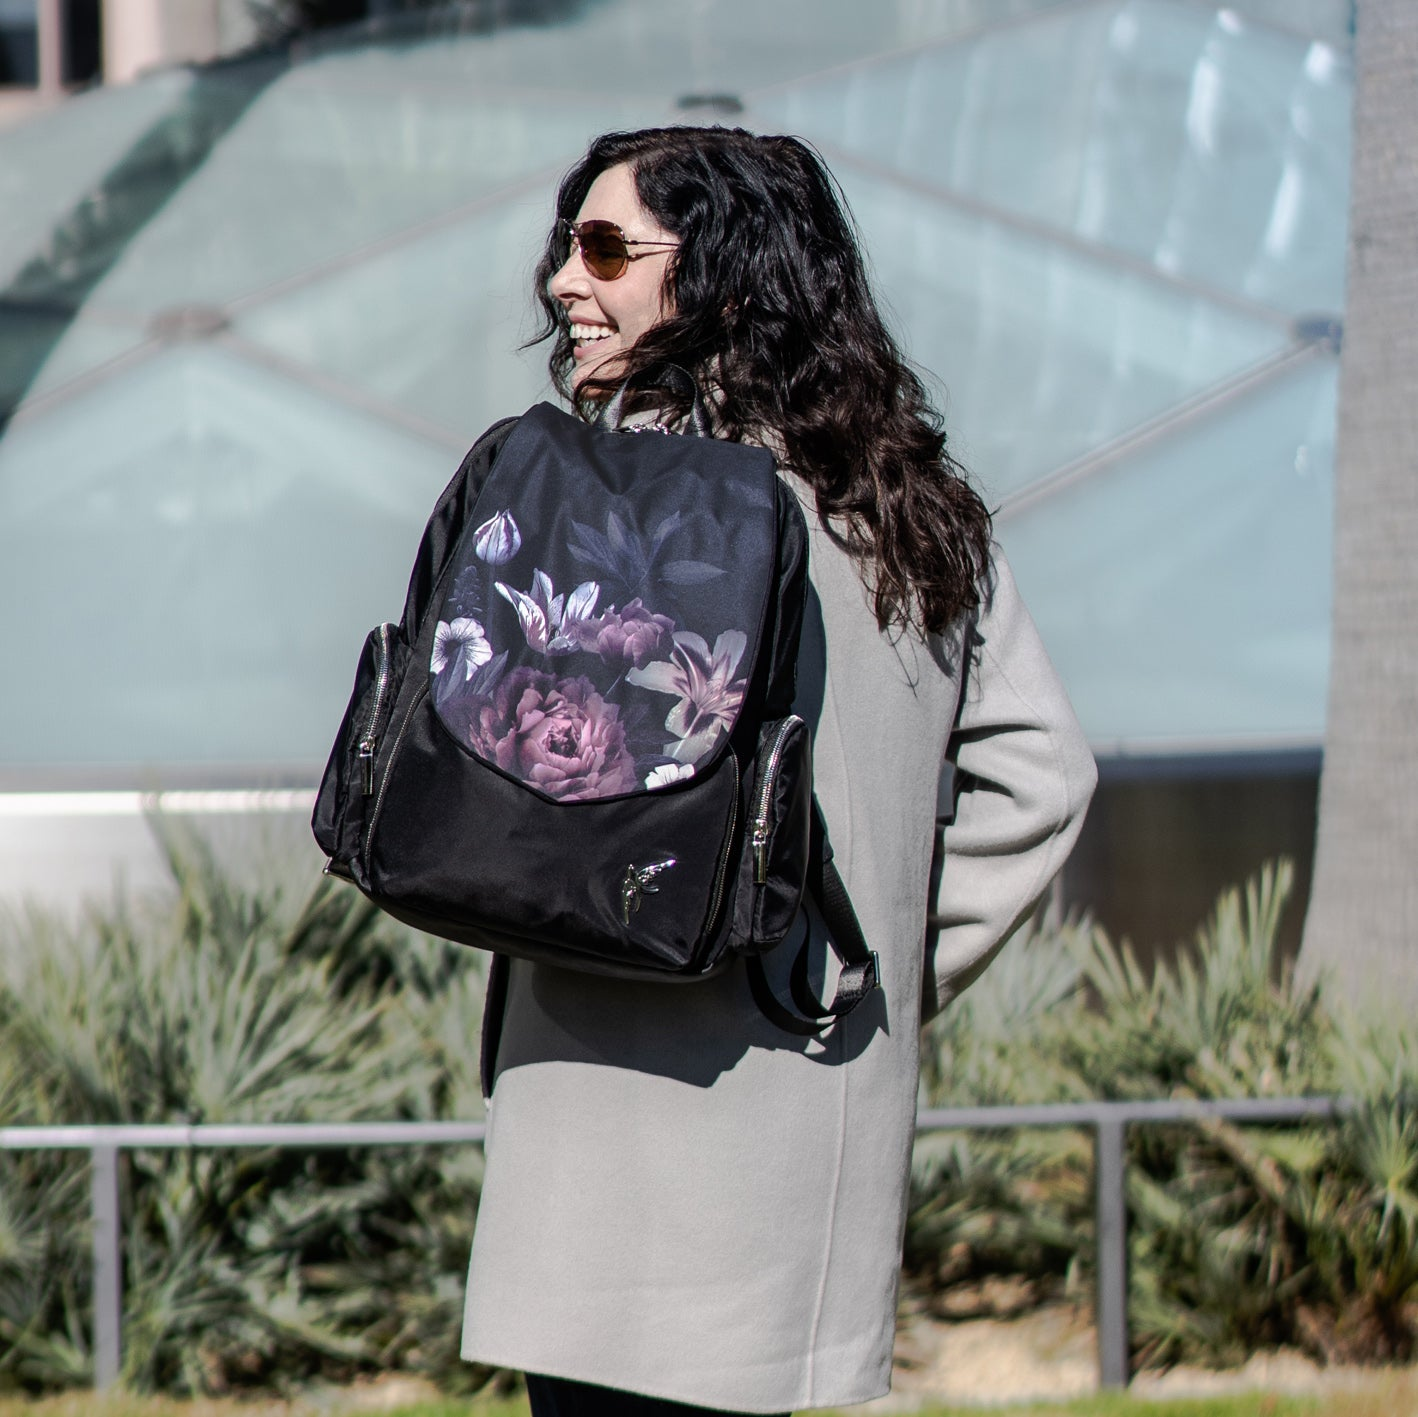 Laptop bag by GraceTech featuring the Dark Floral Print on our Laptop Backpack with a separate computer section.